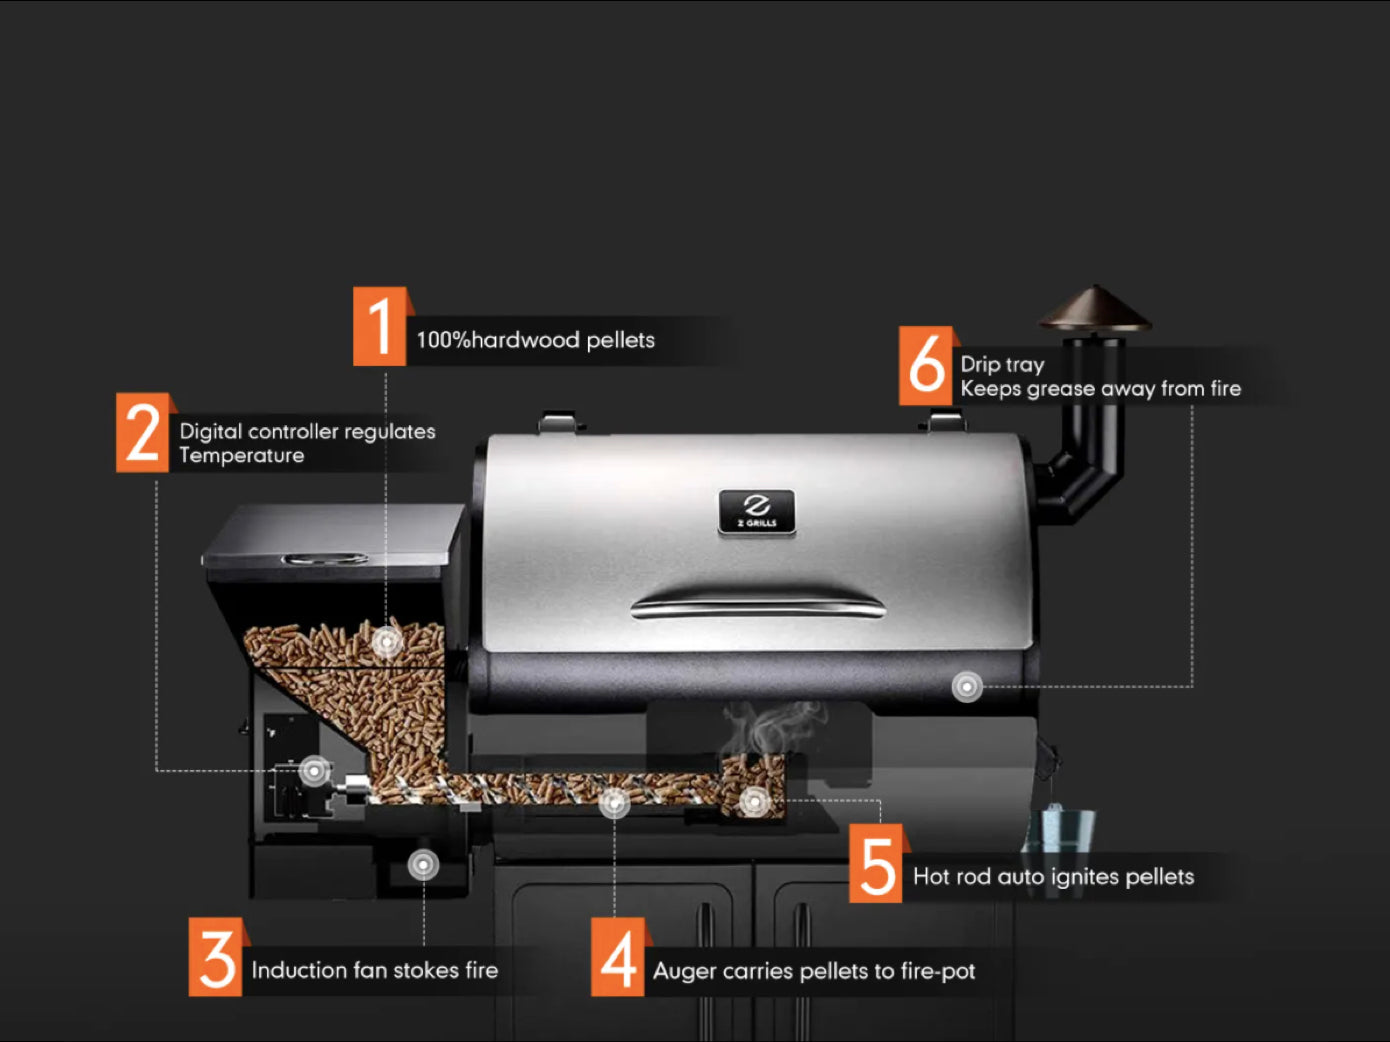 Z Grills 8-in-1 Wood Pellet Grill and Smoker